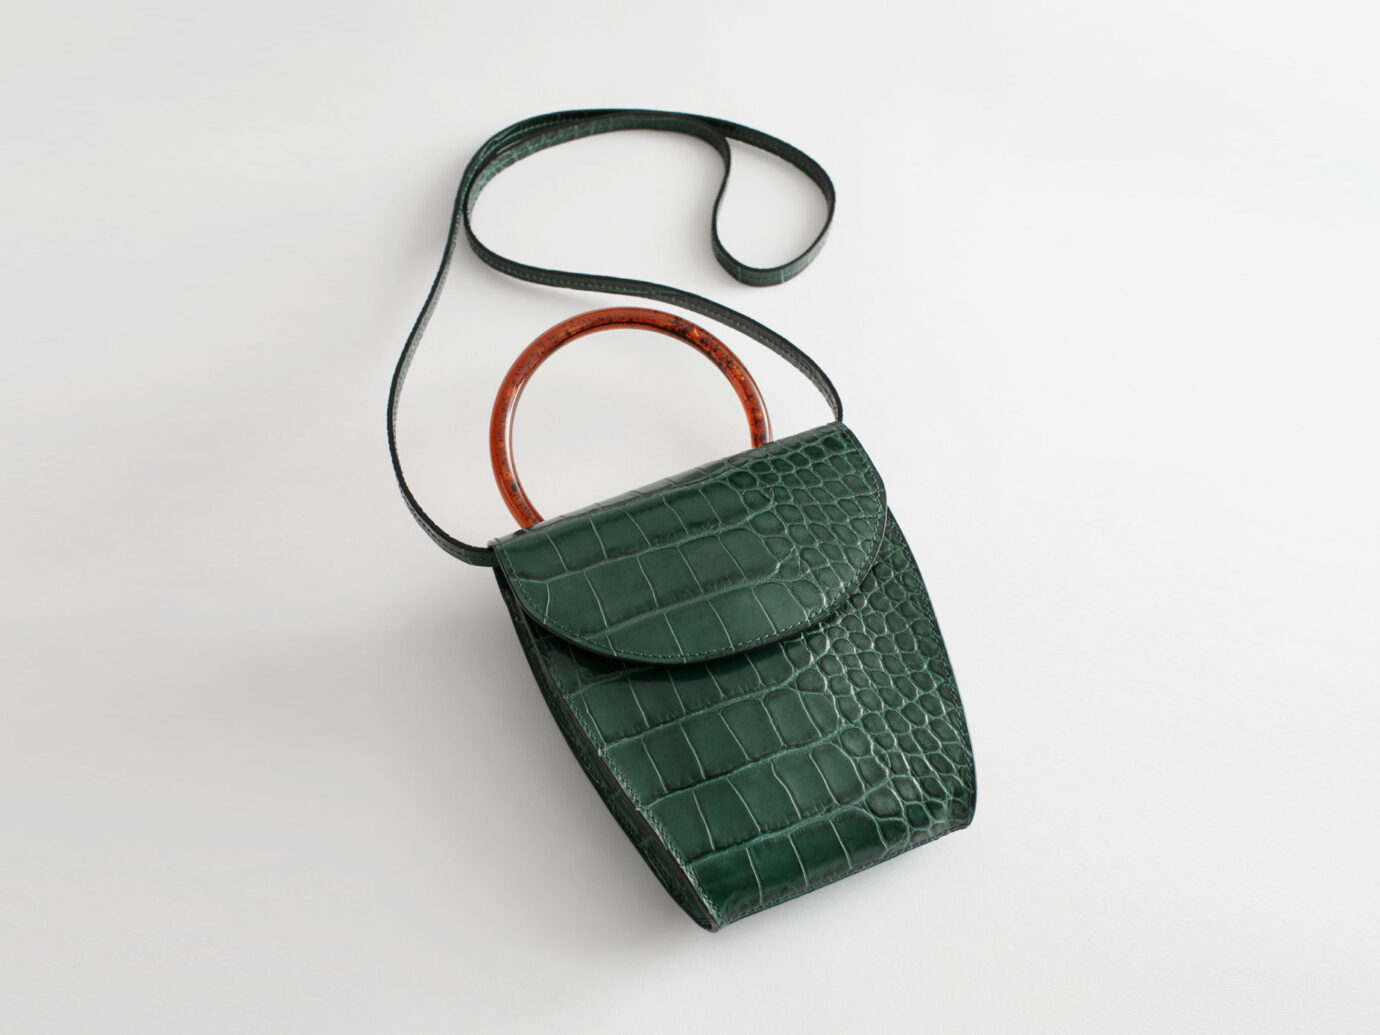 & Other Stories Resin Handle Croc Bag